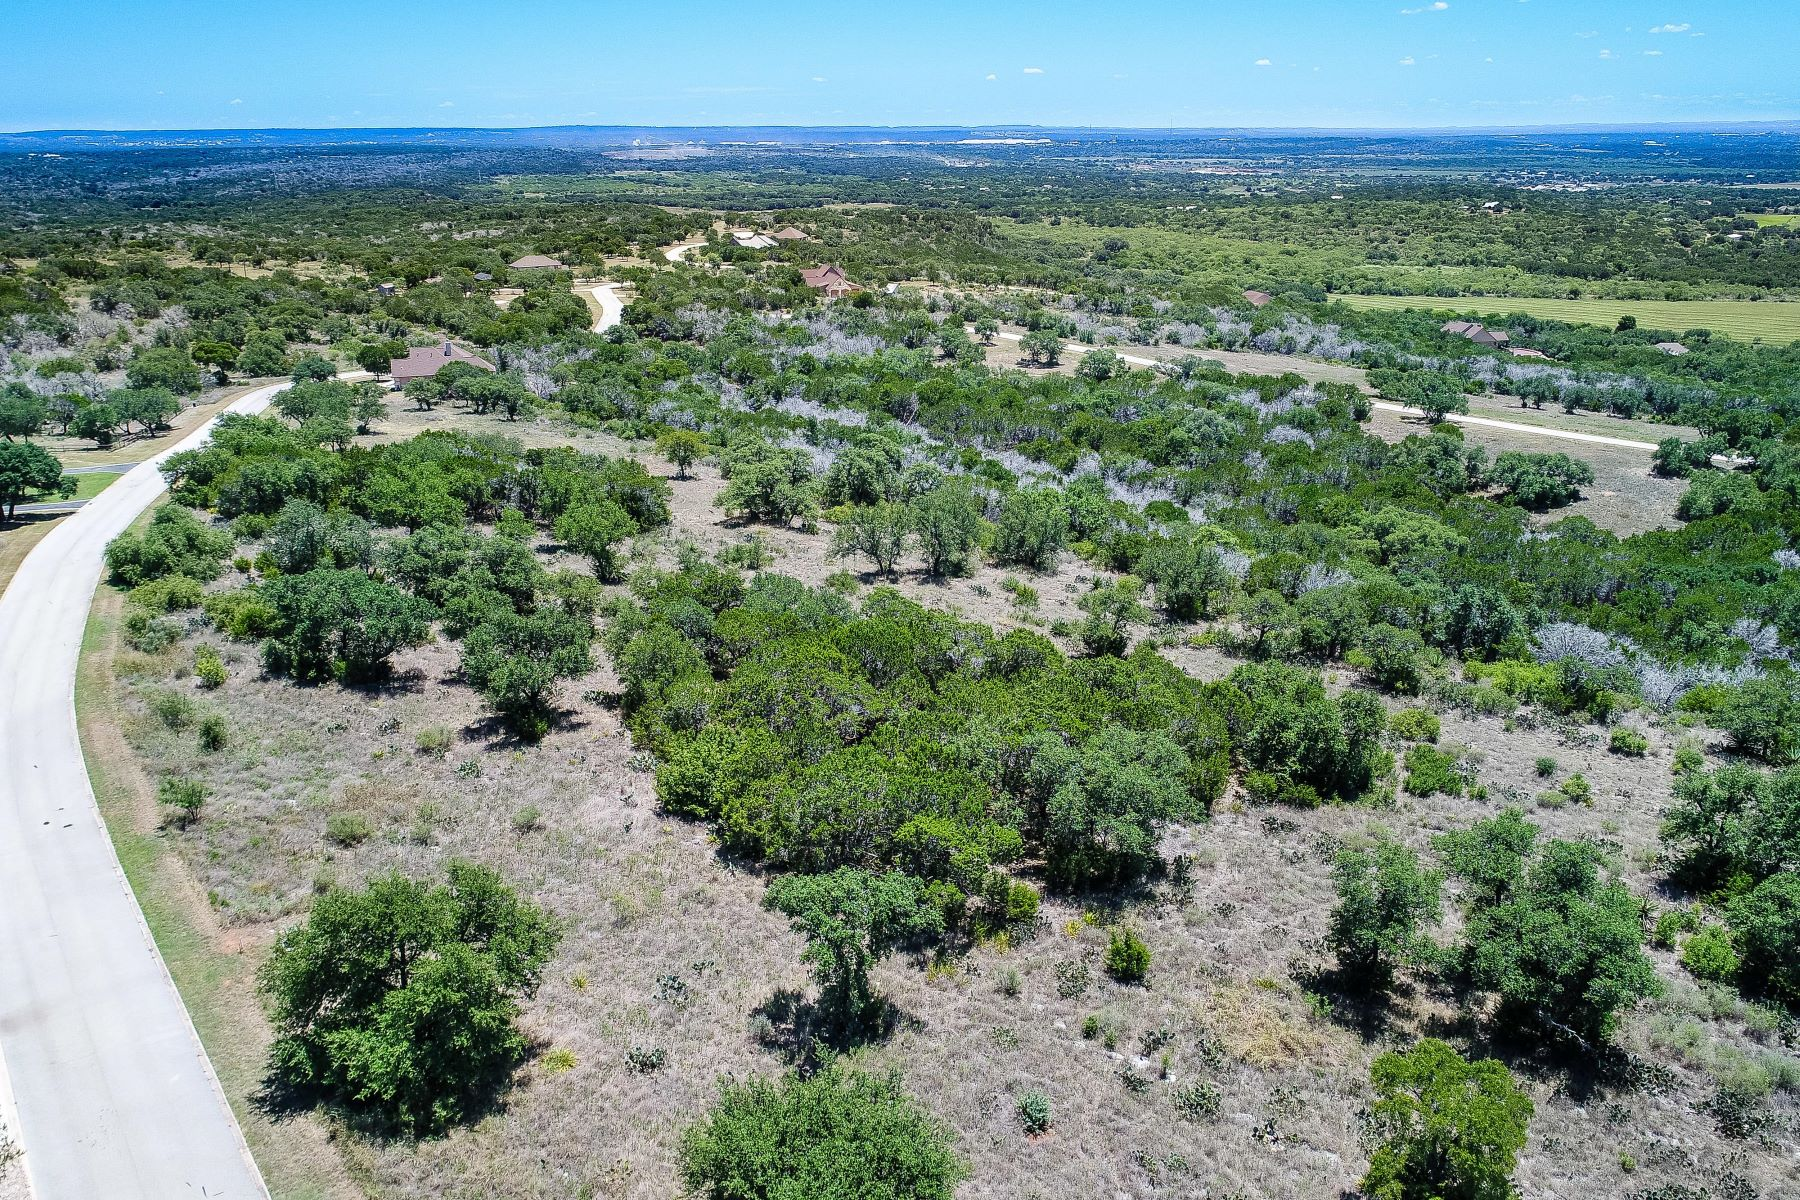 Land for Sale at Lot 24 Stone Mountain Drive, Marble Falls, TX 78654 Lot 24 Stone Mountain Drive Marble Falls, Texas 78654 United States